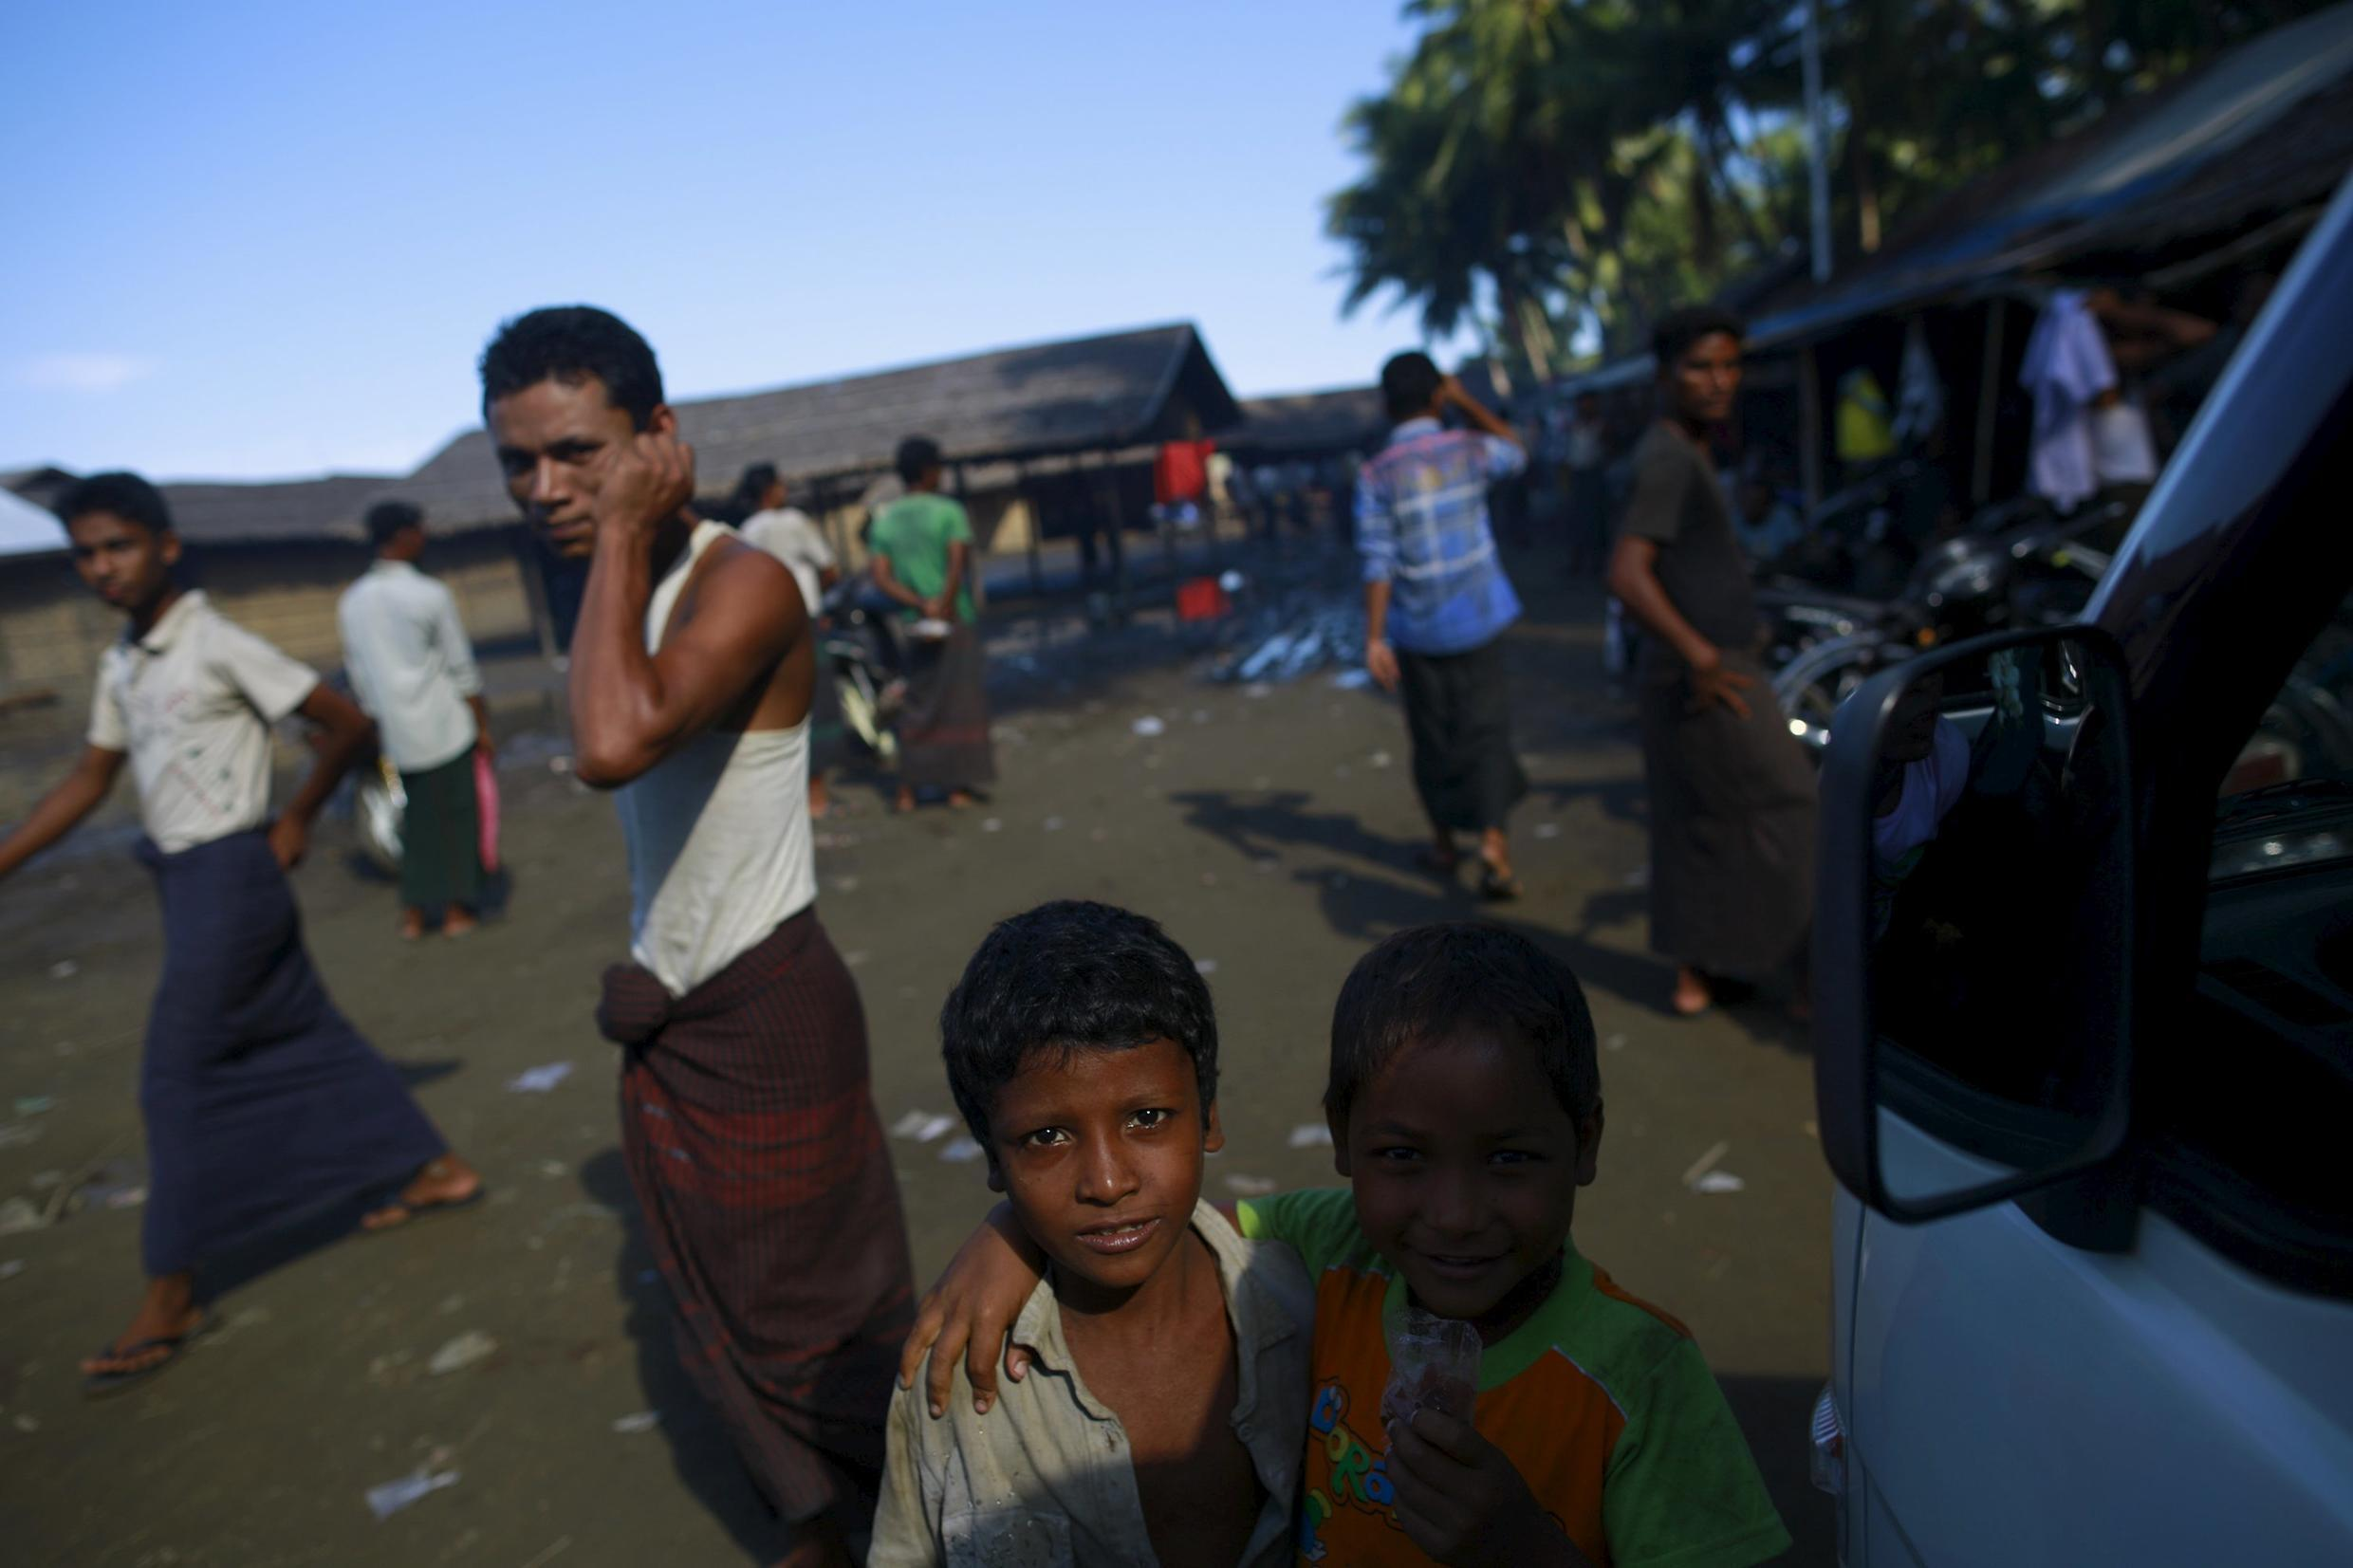 A Rohingya camp in Sittwe, Burma on 20 May 2015. The report's authors say ethnic Rohingyas who are Muslim face an increasing number of brutal attacks in Myanmar